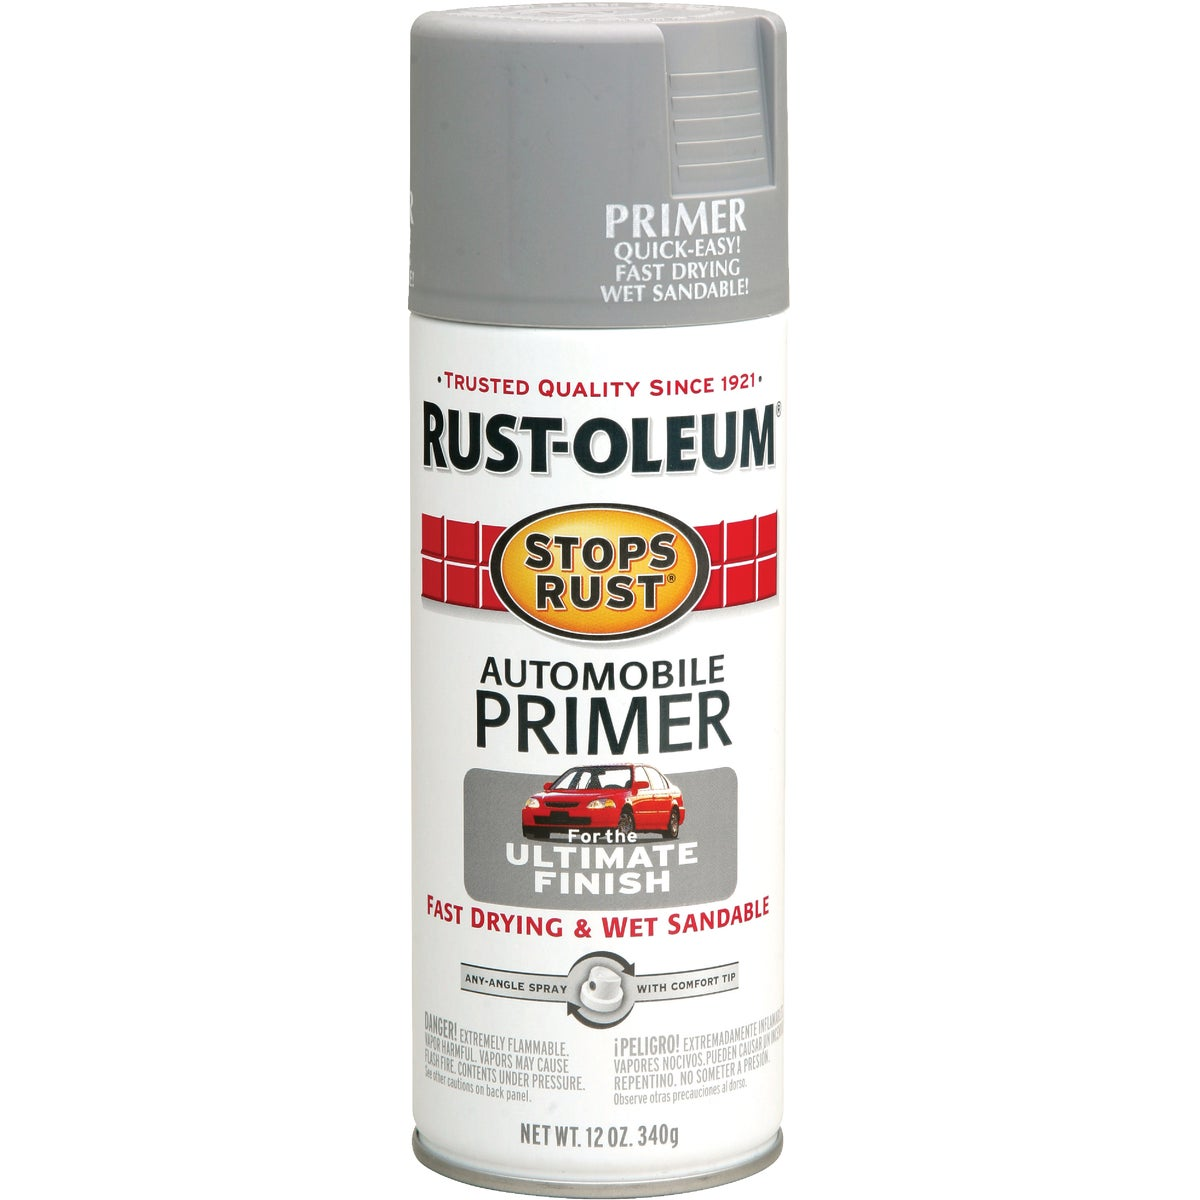 LT GRY AUTO SPRAY PRIMER - 2081-830 by Rustoleum